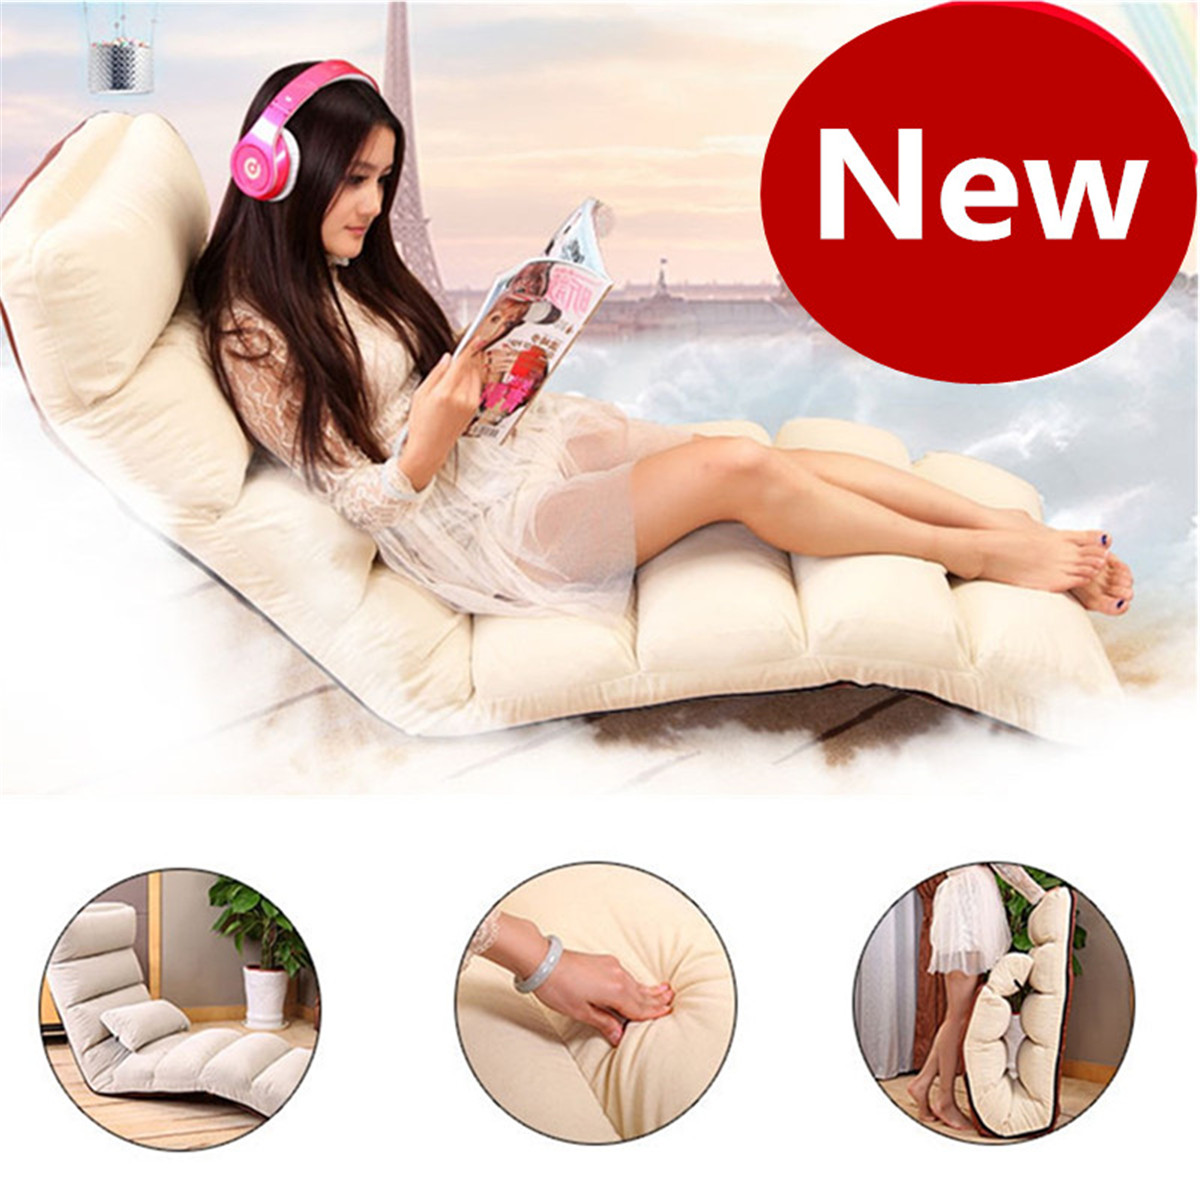 205CM 3 Folding Lazy Sofa Chair Lounger Seat Bean Bag Tatami Portable Stylish Couch Bed Lounge with Pillow Back Support